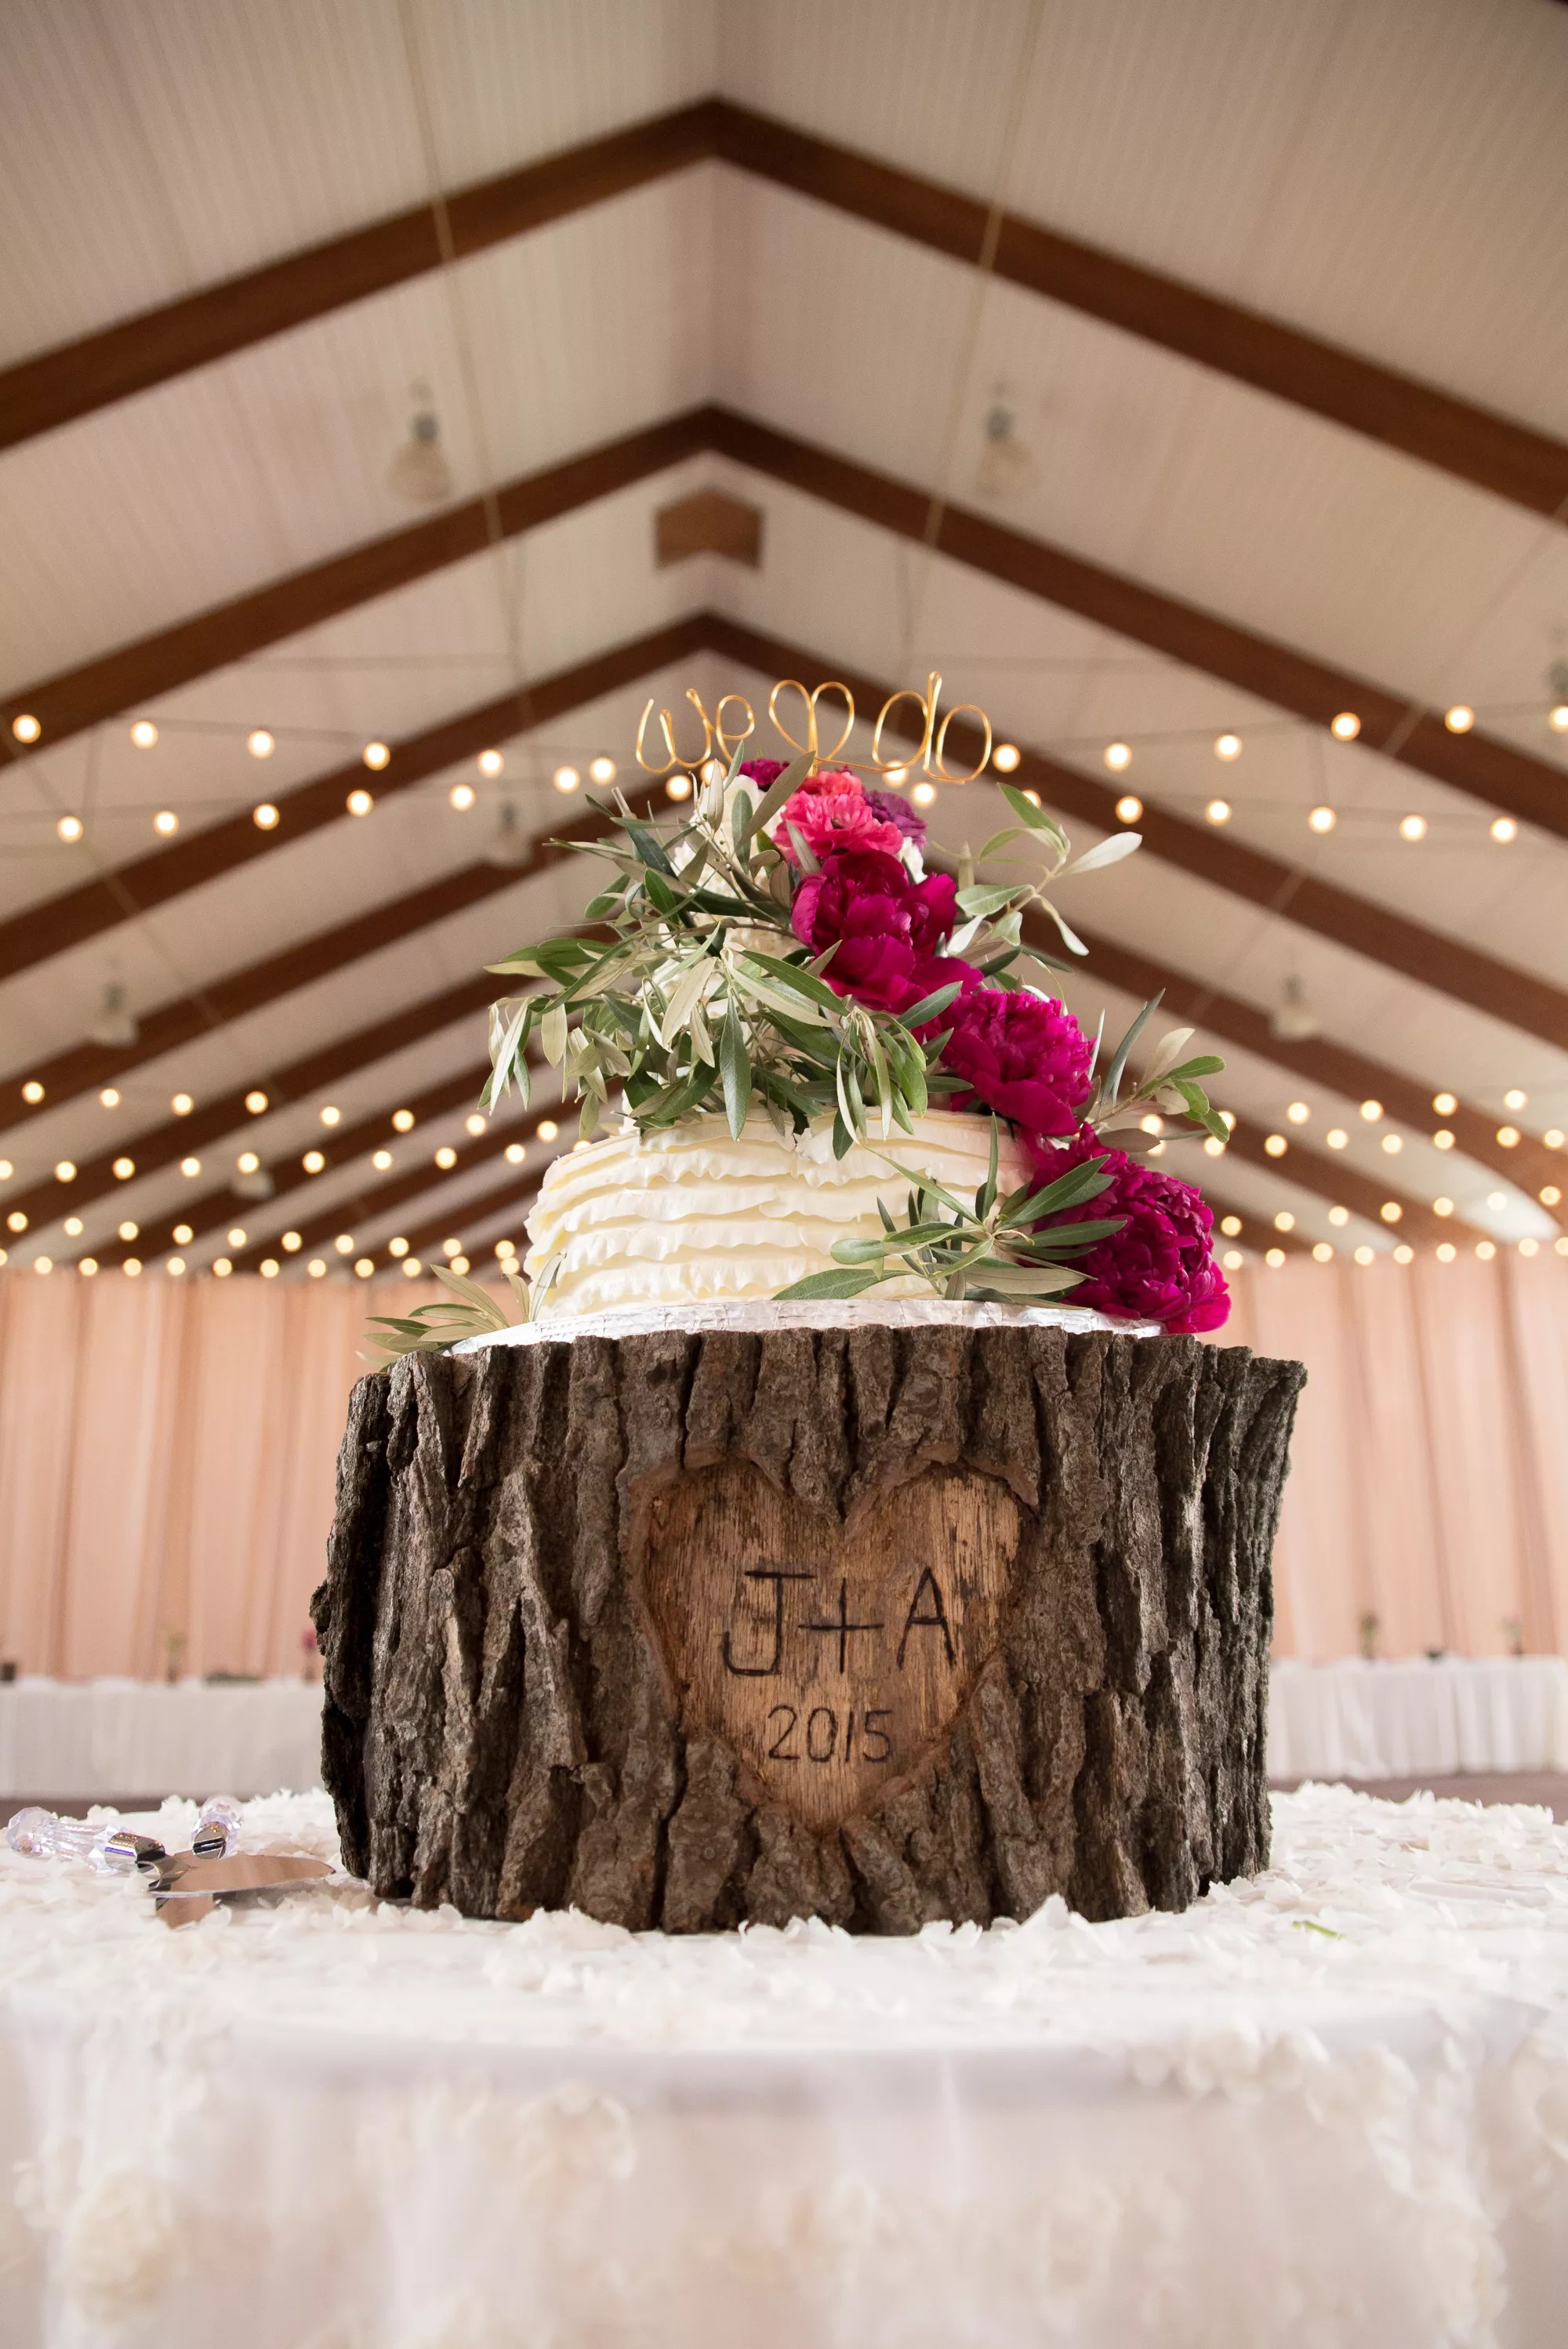 Personalized Tree Trunk Wedding Cake Stand